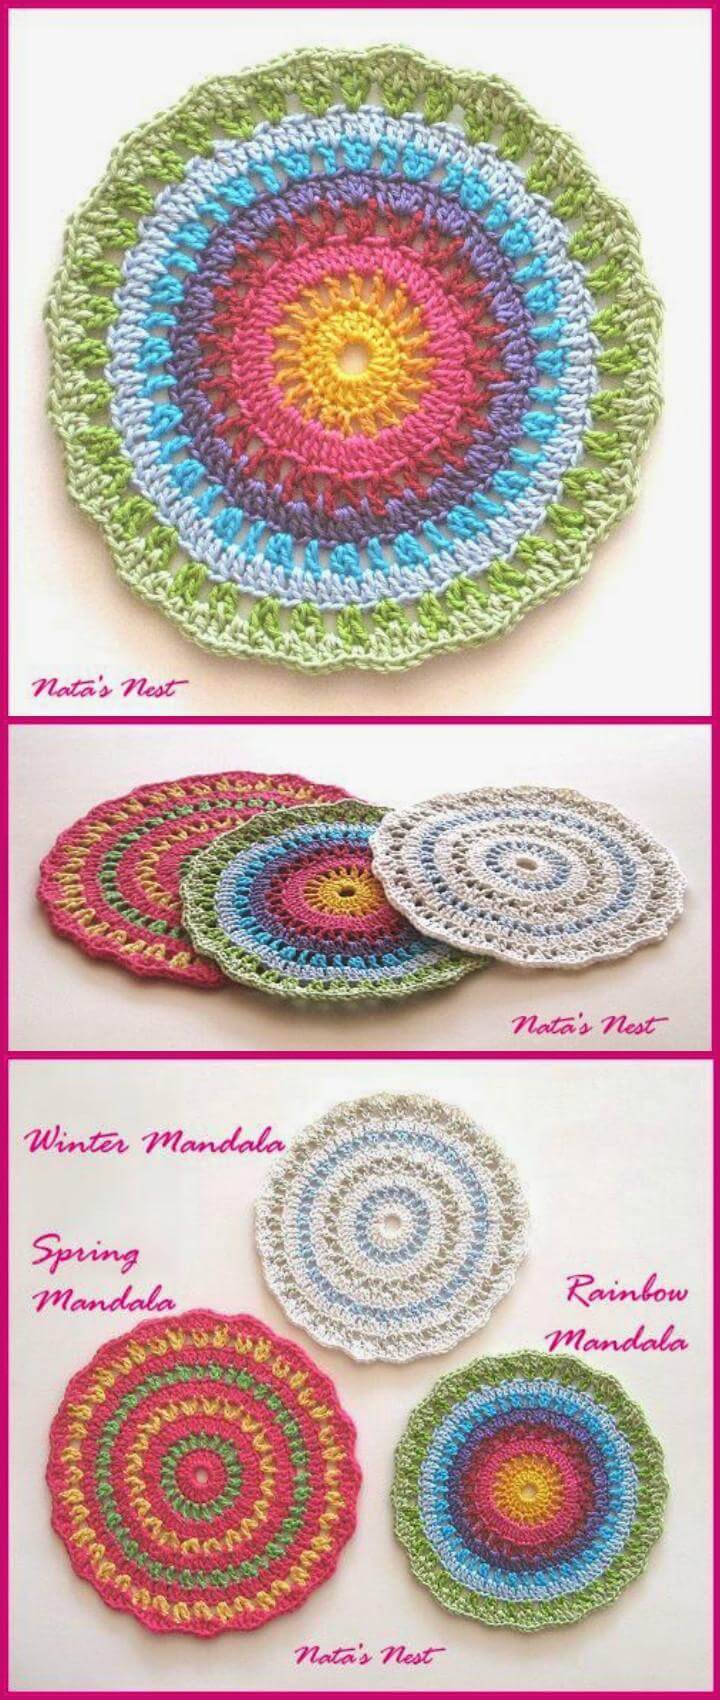 epic crochet rainbow mandala